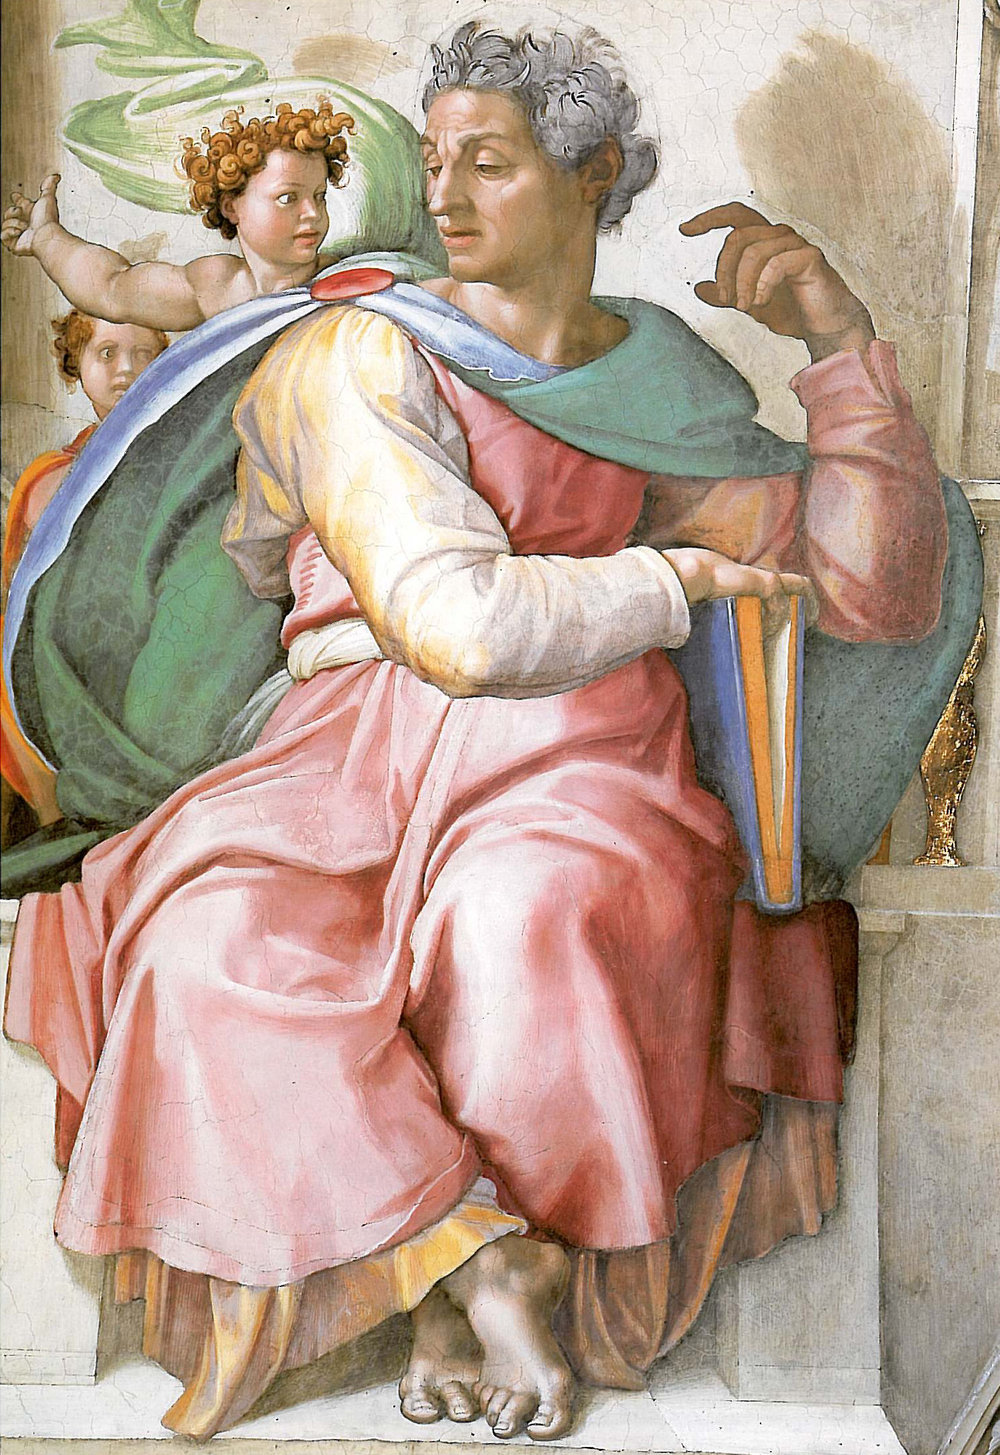 Michelangelo, The Prophet Isaiah, from the Sistine Ceiling, 1508-1512.